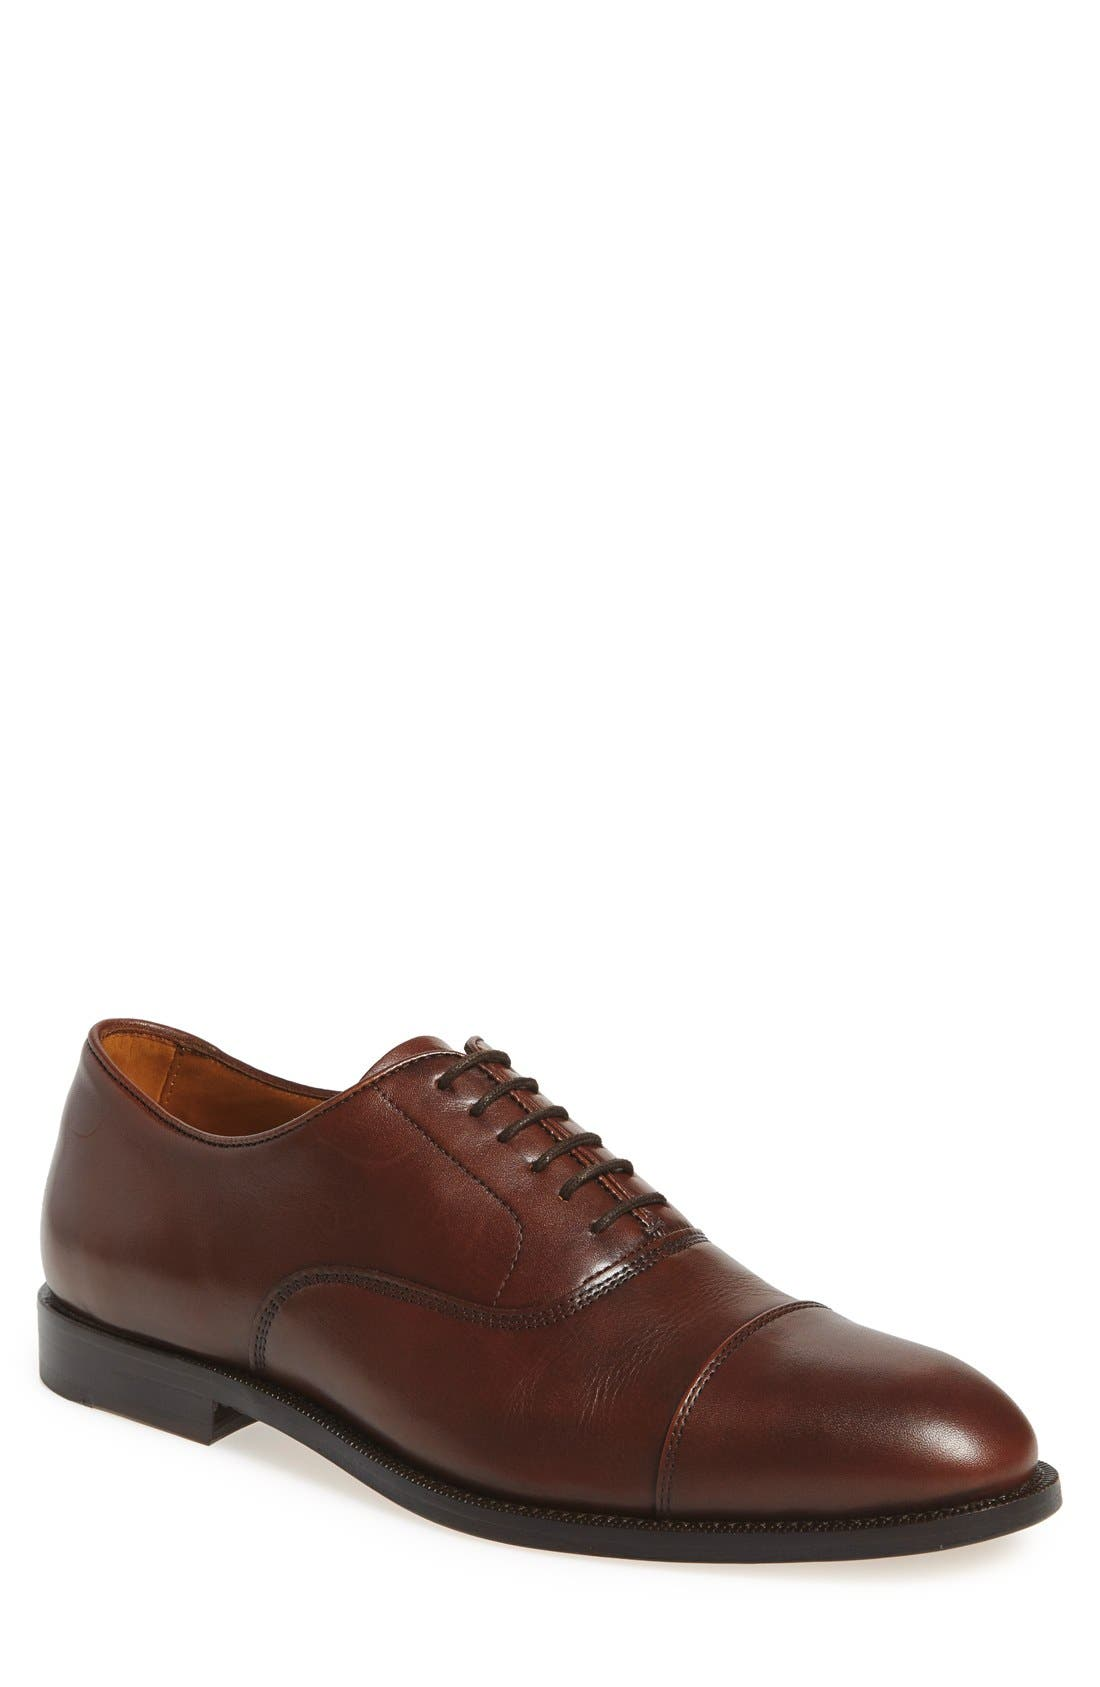 Vince Camuto 'Eeric' Cap Toe Oxford (Men)